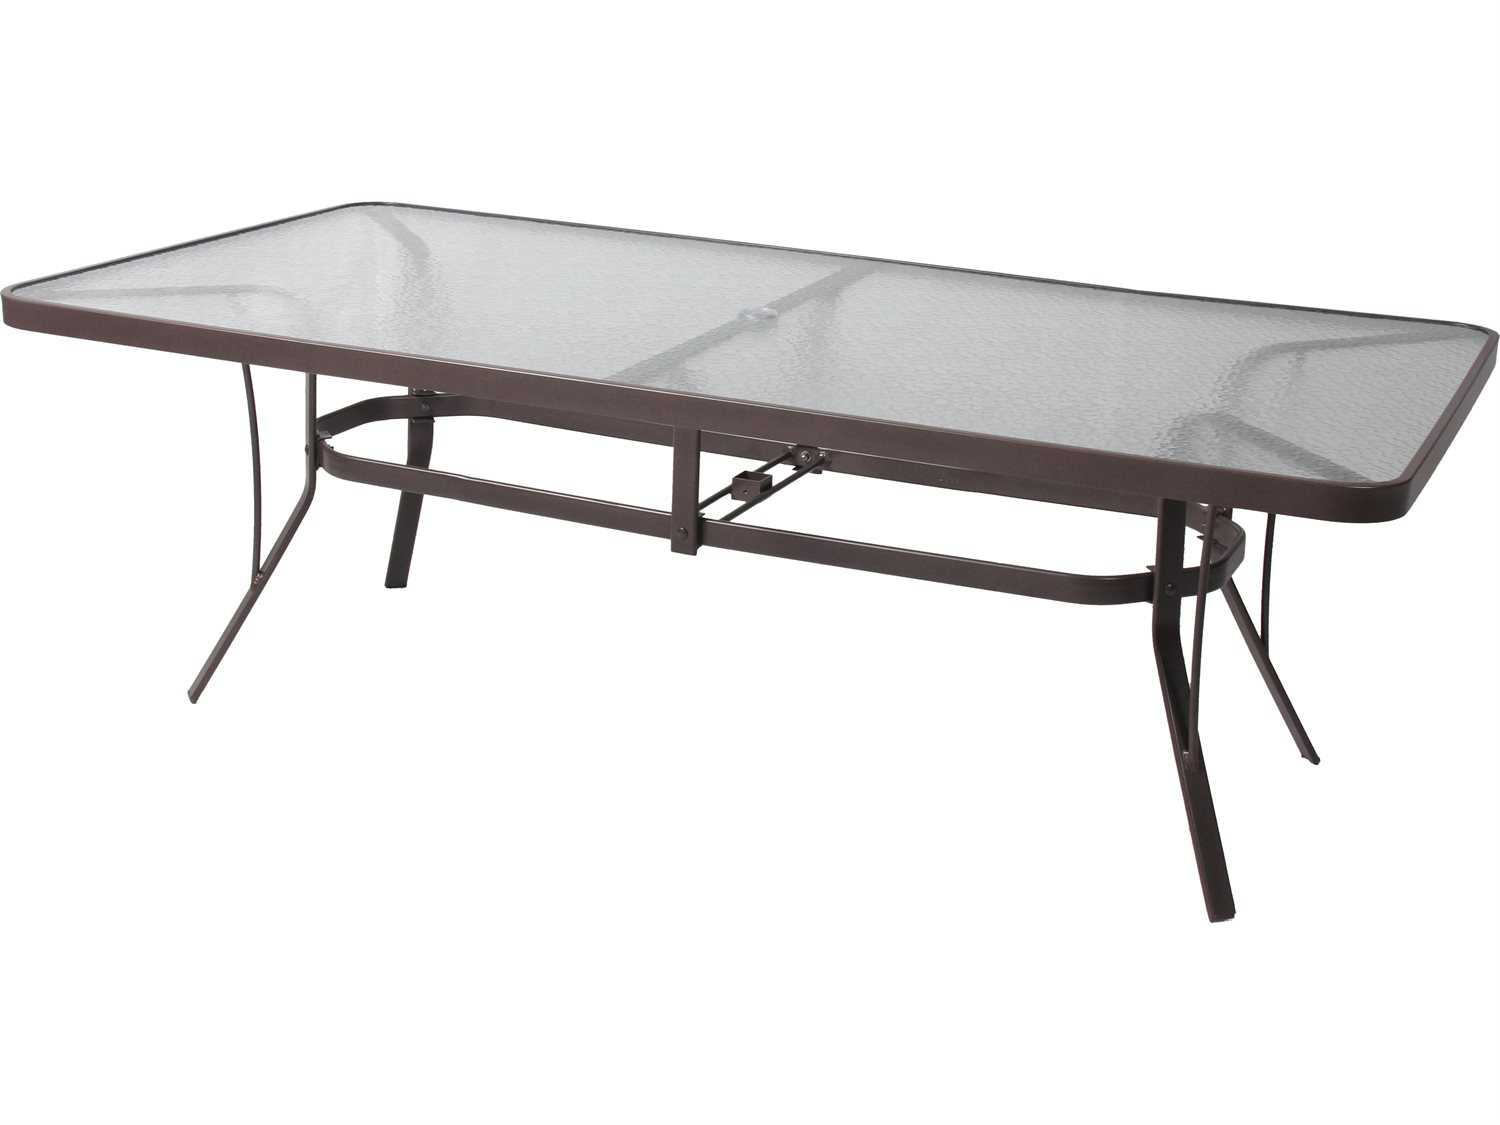 Dining Table With Umbrella Hole Su4284rkd Cast Aluminum Tables